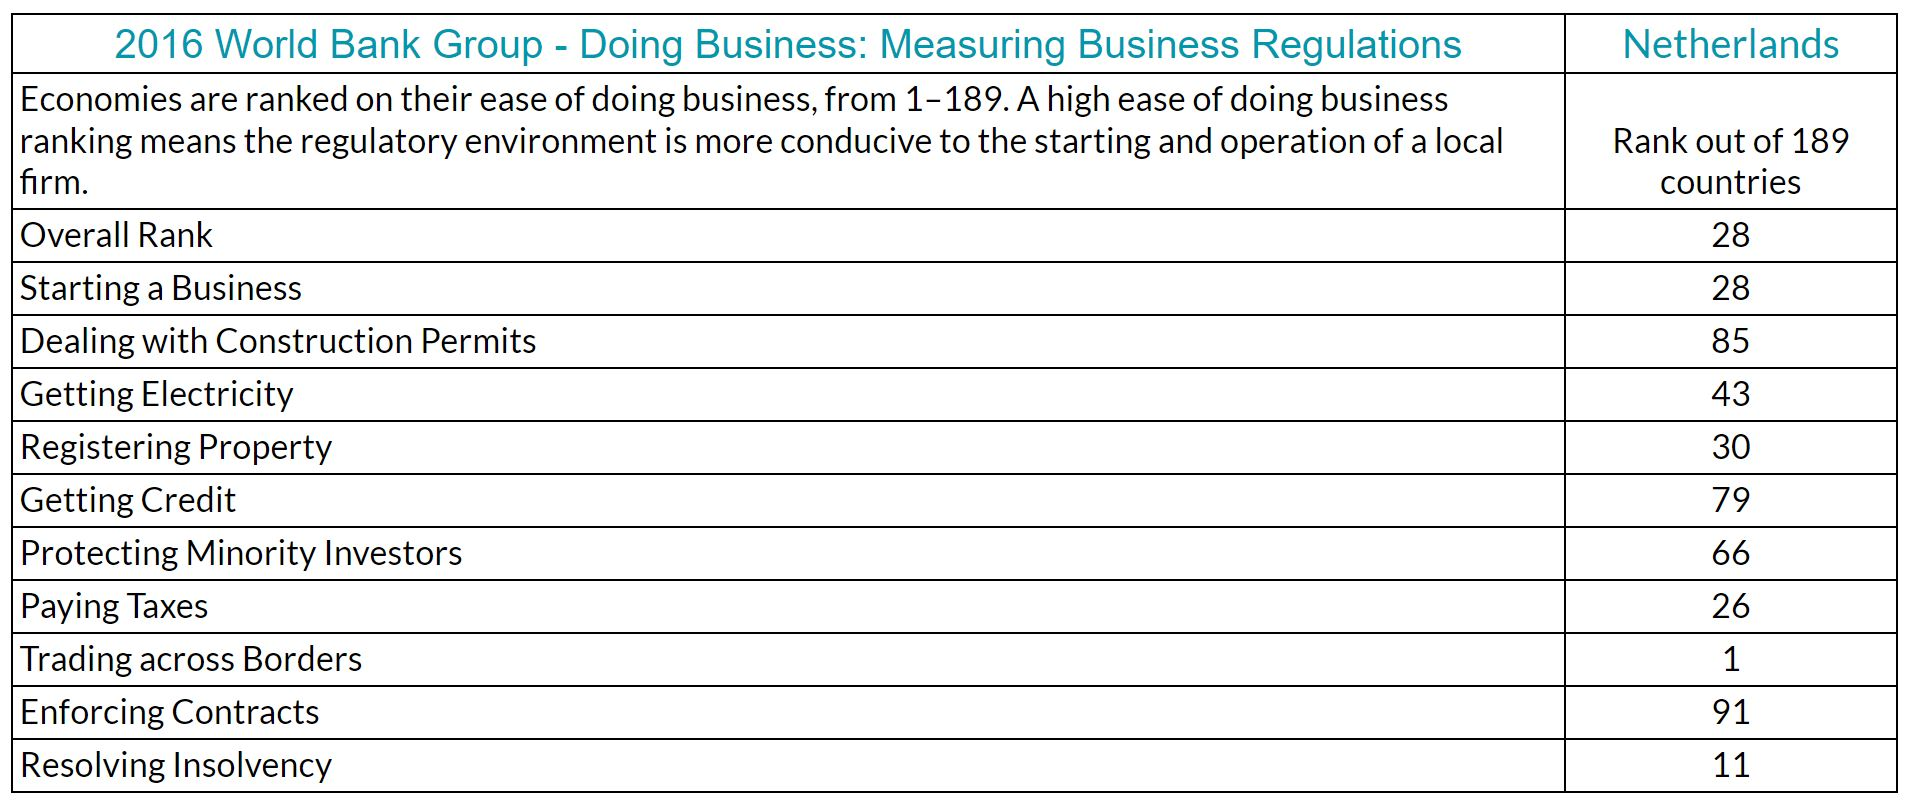 World Bank Group - Doing Business Report - stats for the Netherlands